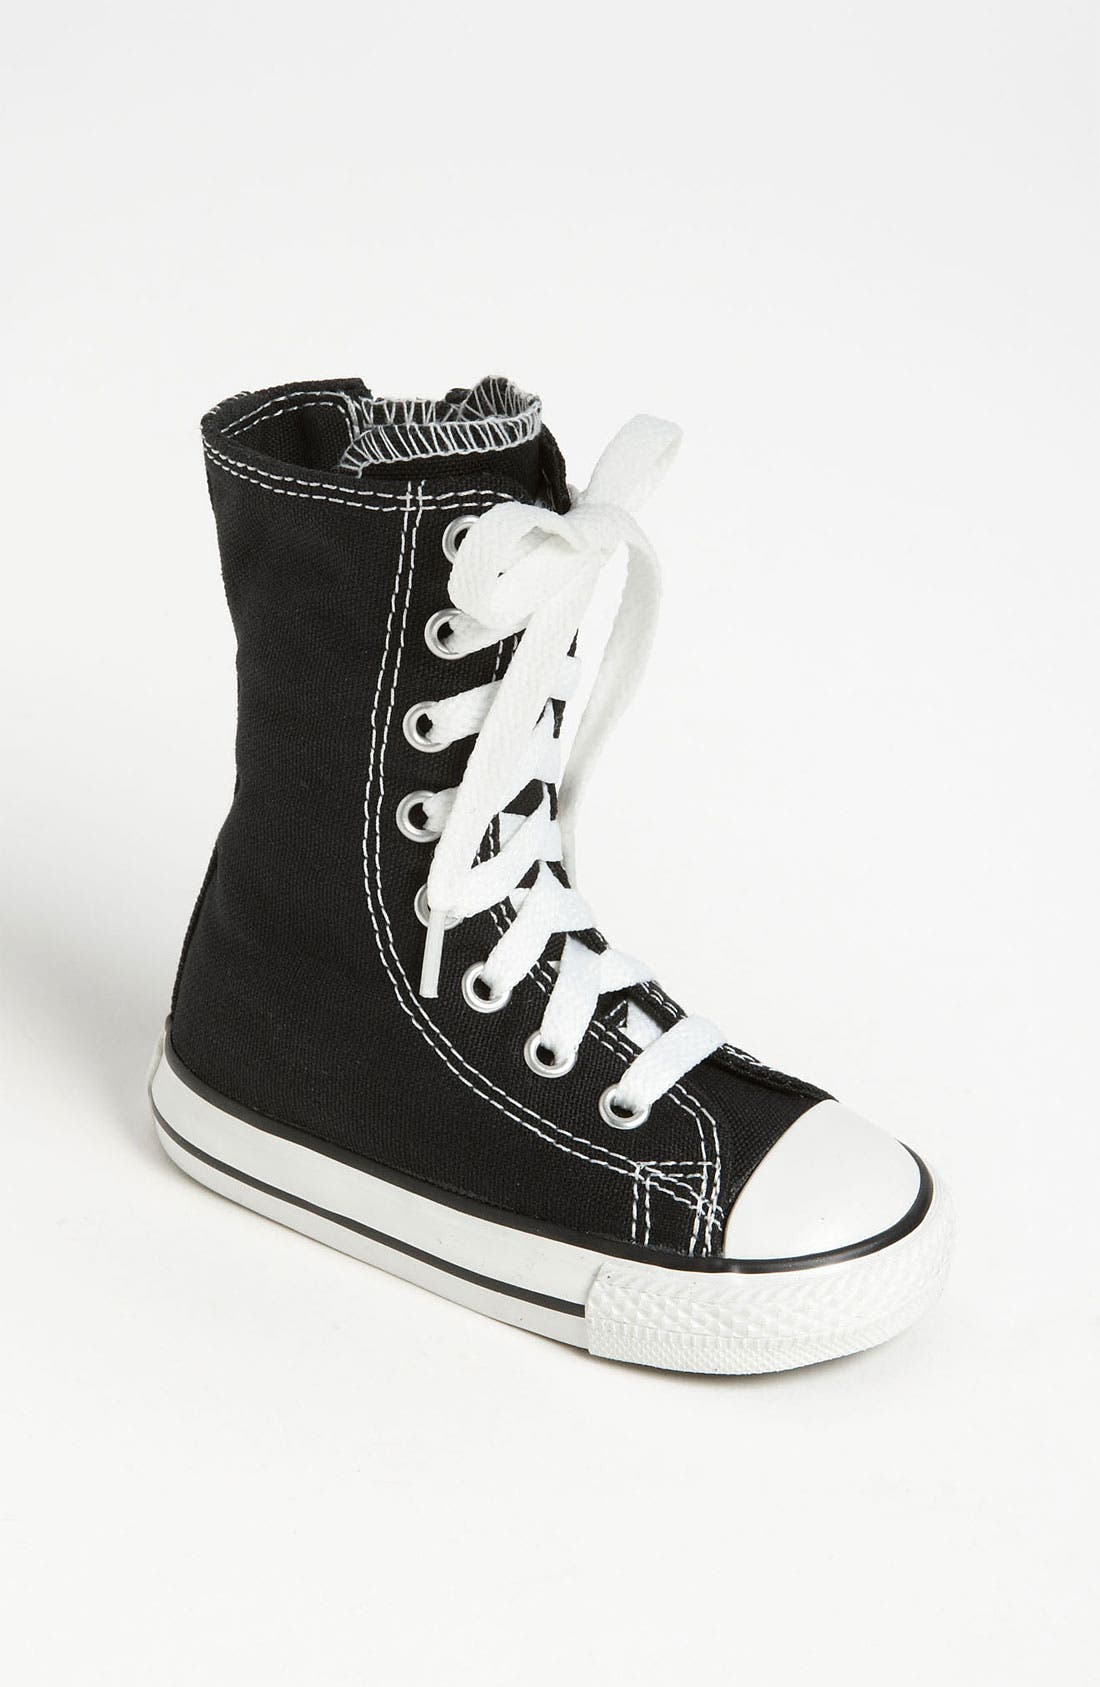 Alternate Image 1 Selected - Converse 'X-HI' Tall Sneaker (Baby, Walker & Toddler)